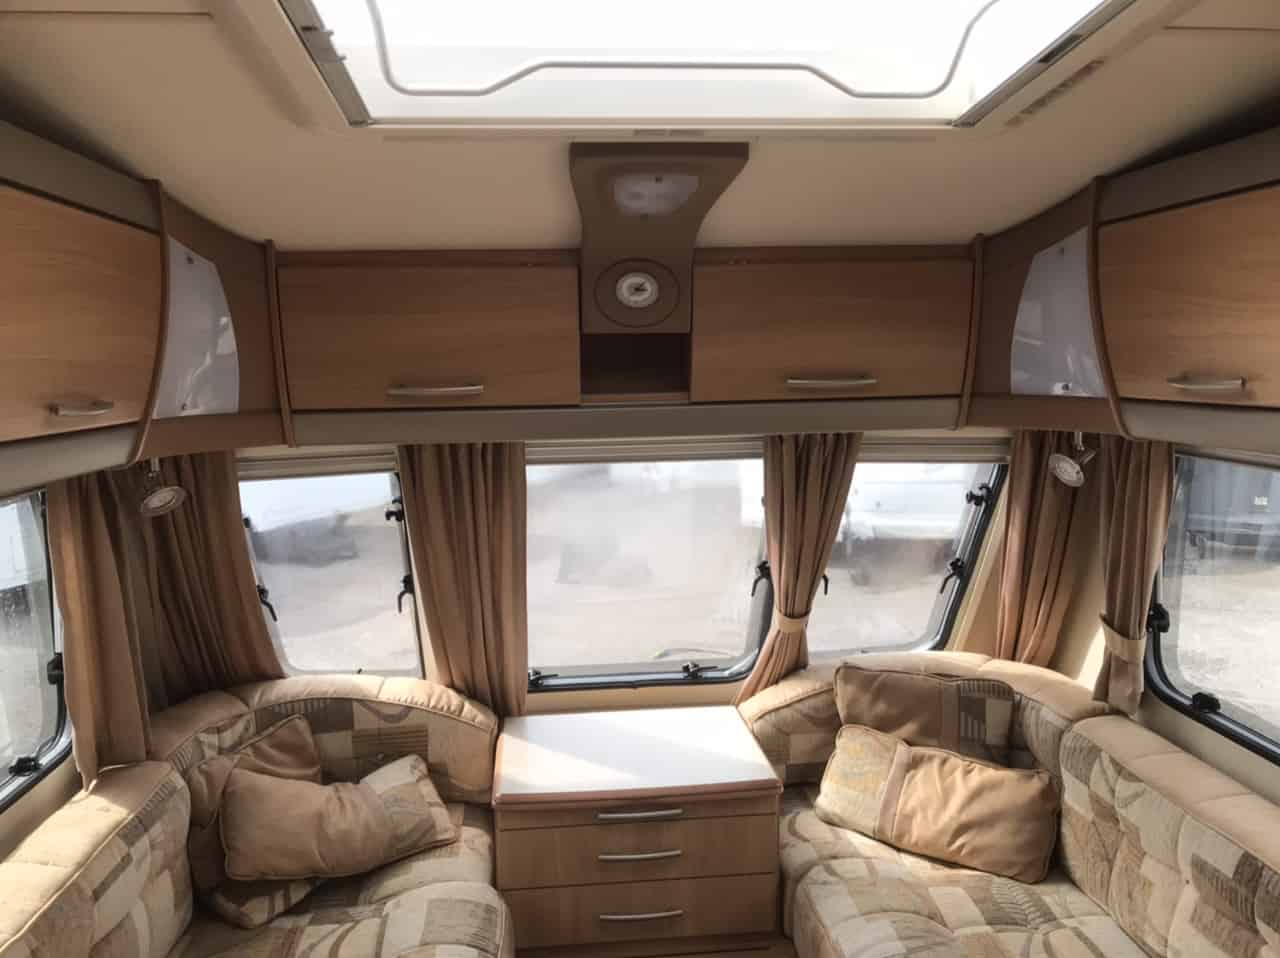 SWIFT CHALLENGER 480 / 2 berth -, full rear washroom incorperating a seperate shower cubicle, toilet and vanity unit - central offside kitchen - central nearside dinette - For sale at North Western Caravans.